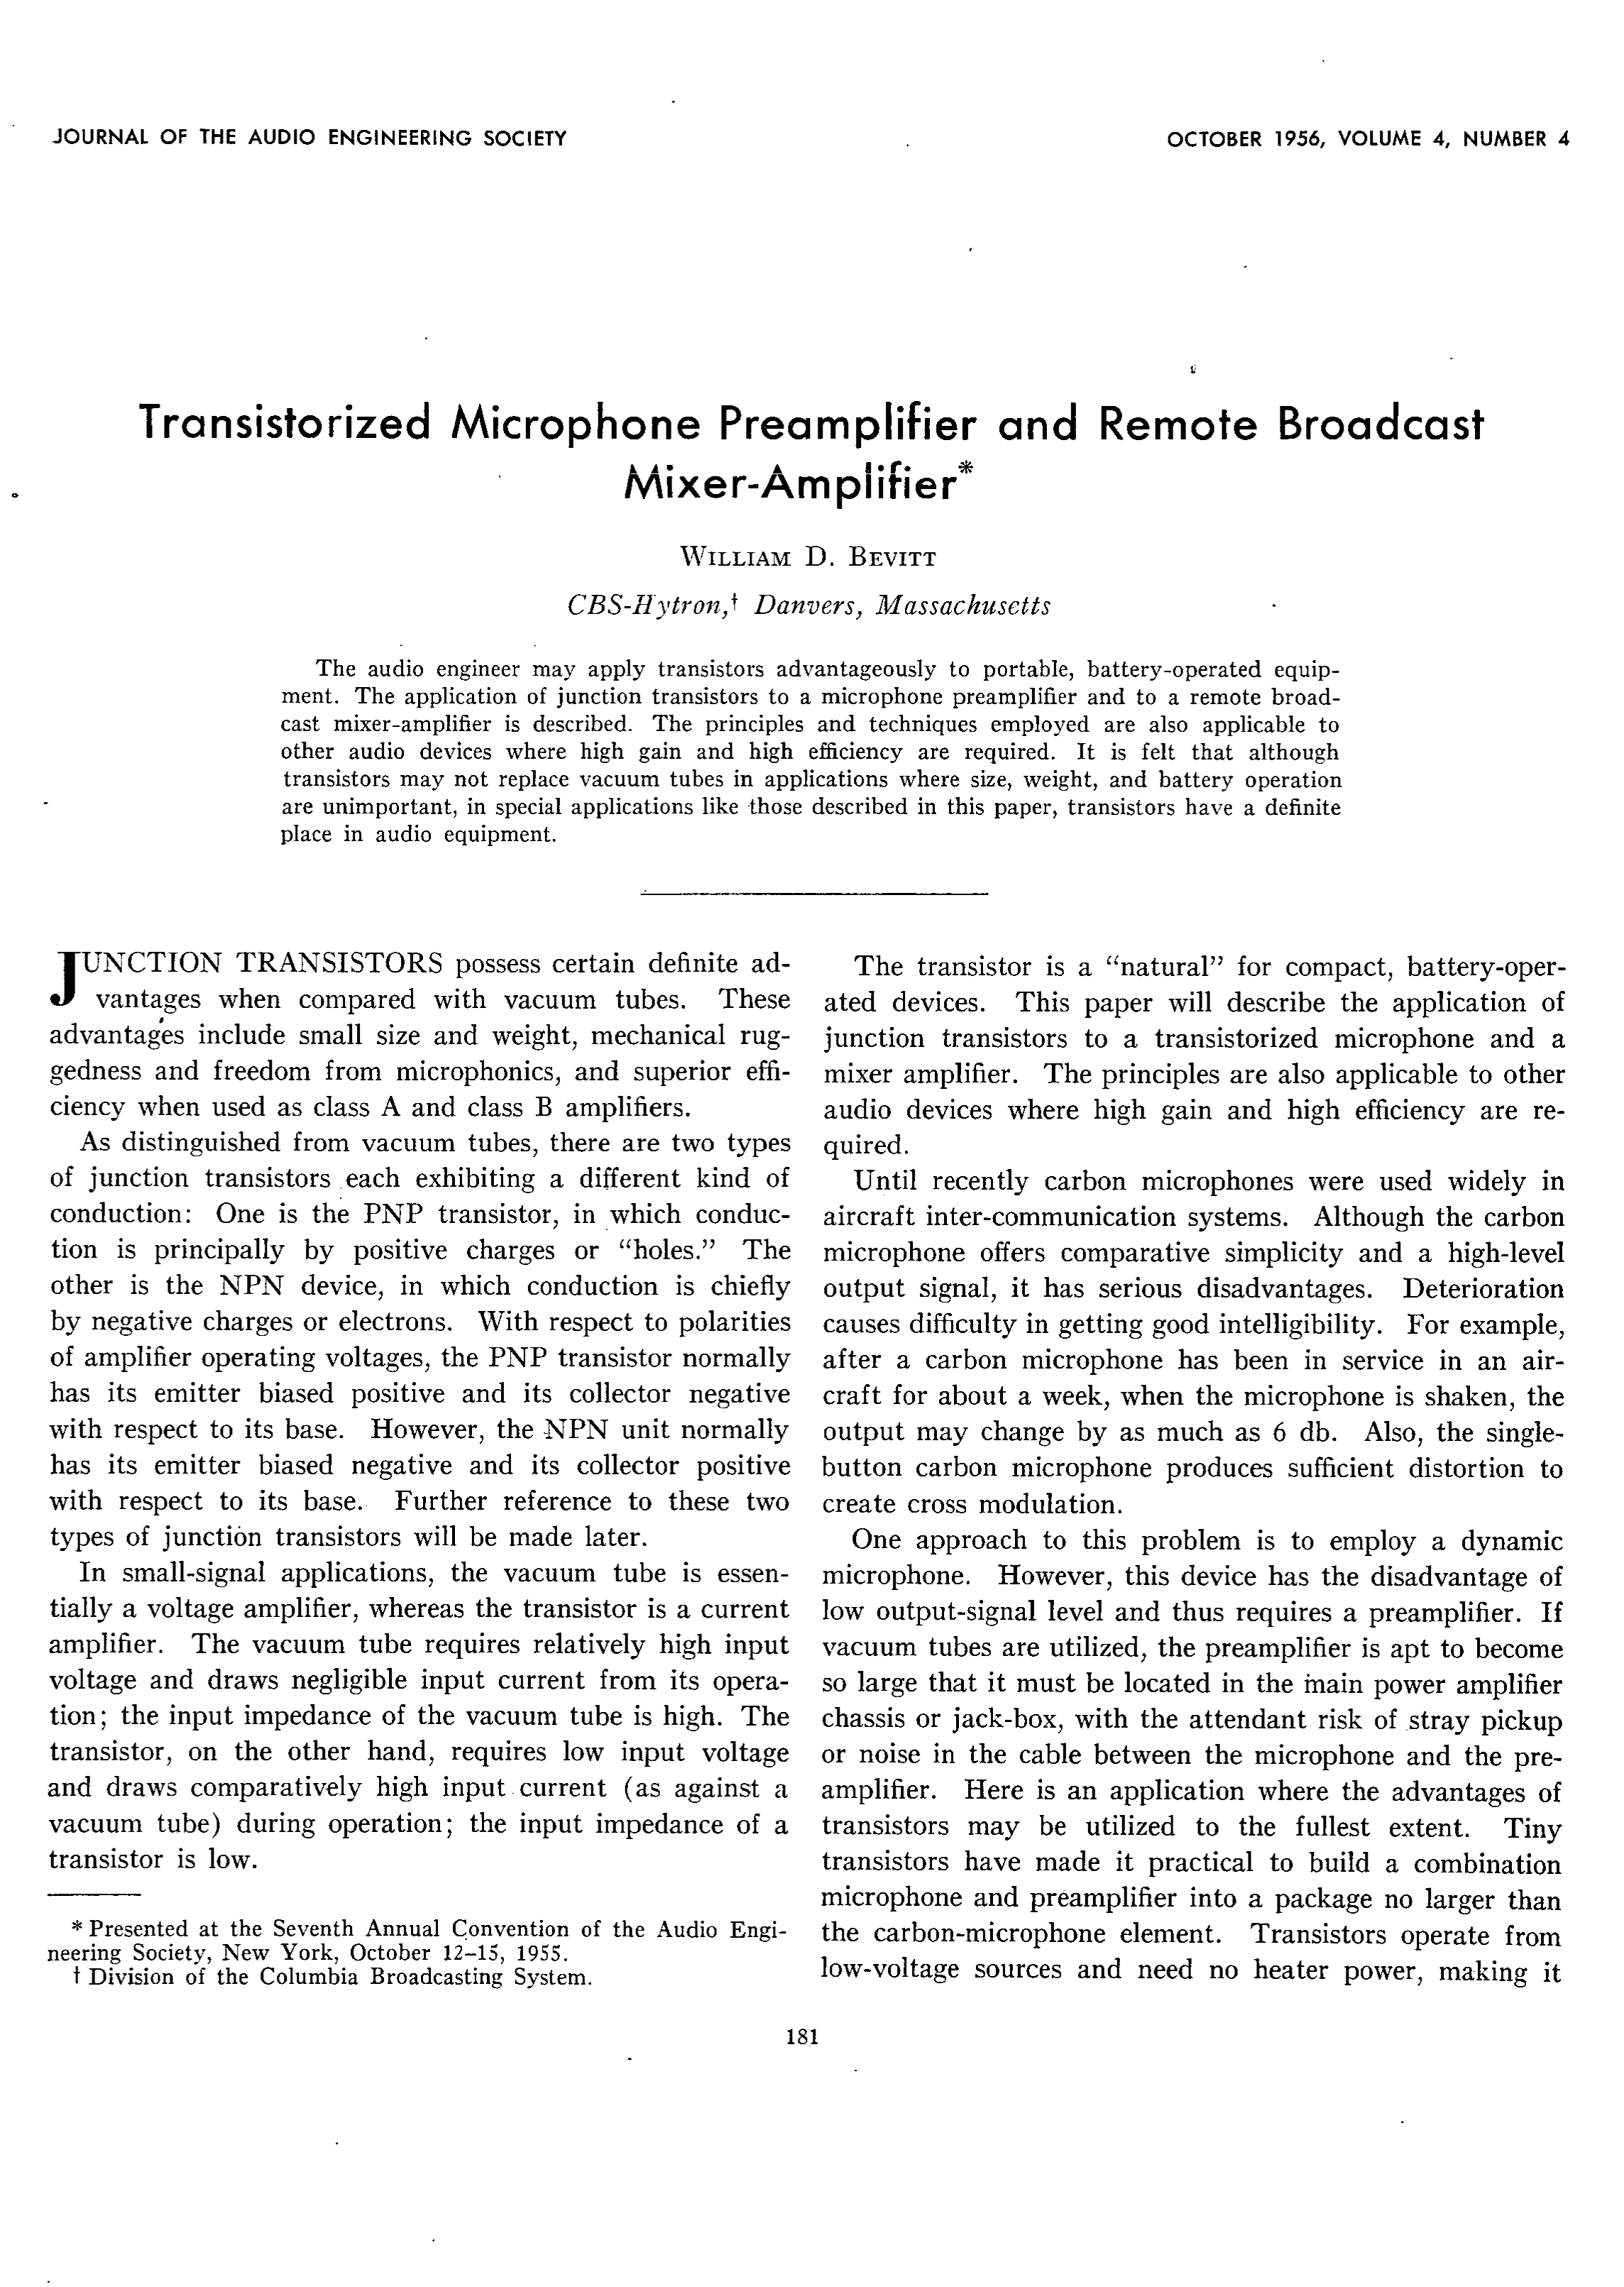 AES E-Library » Transistorized Microphone Preamplifier and Remote